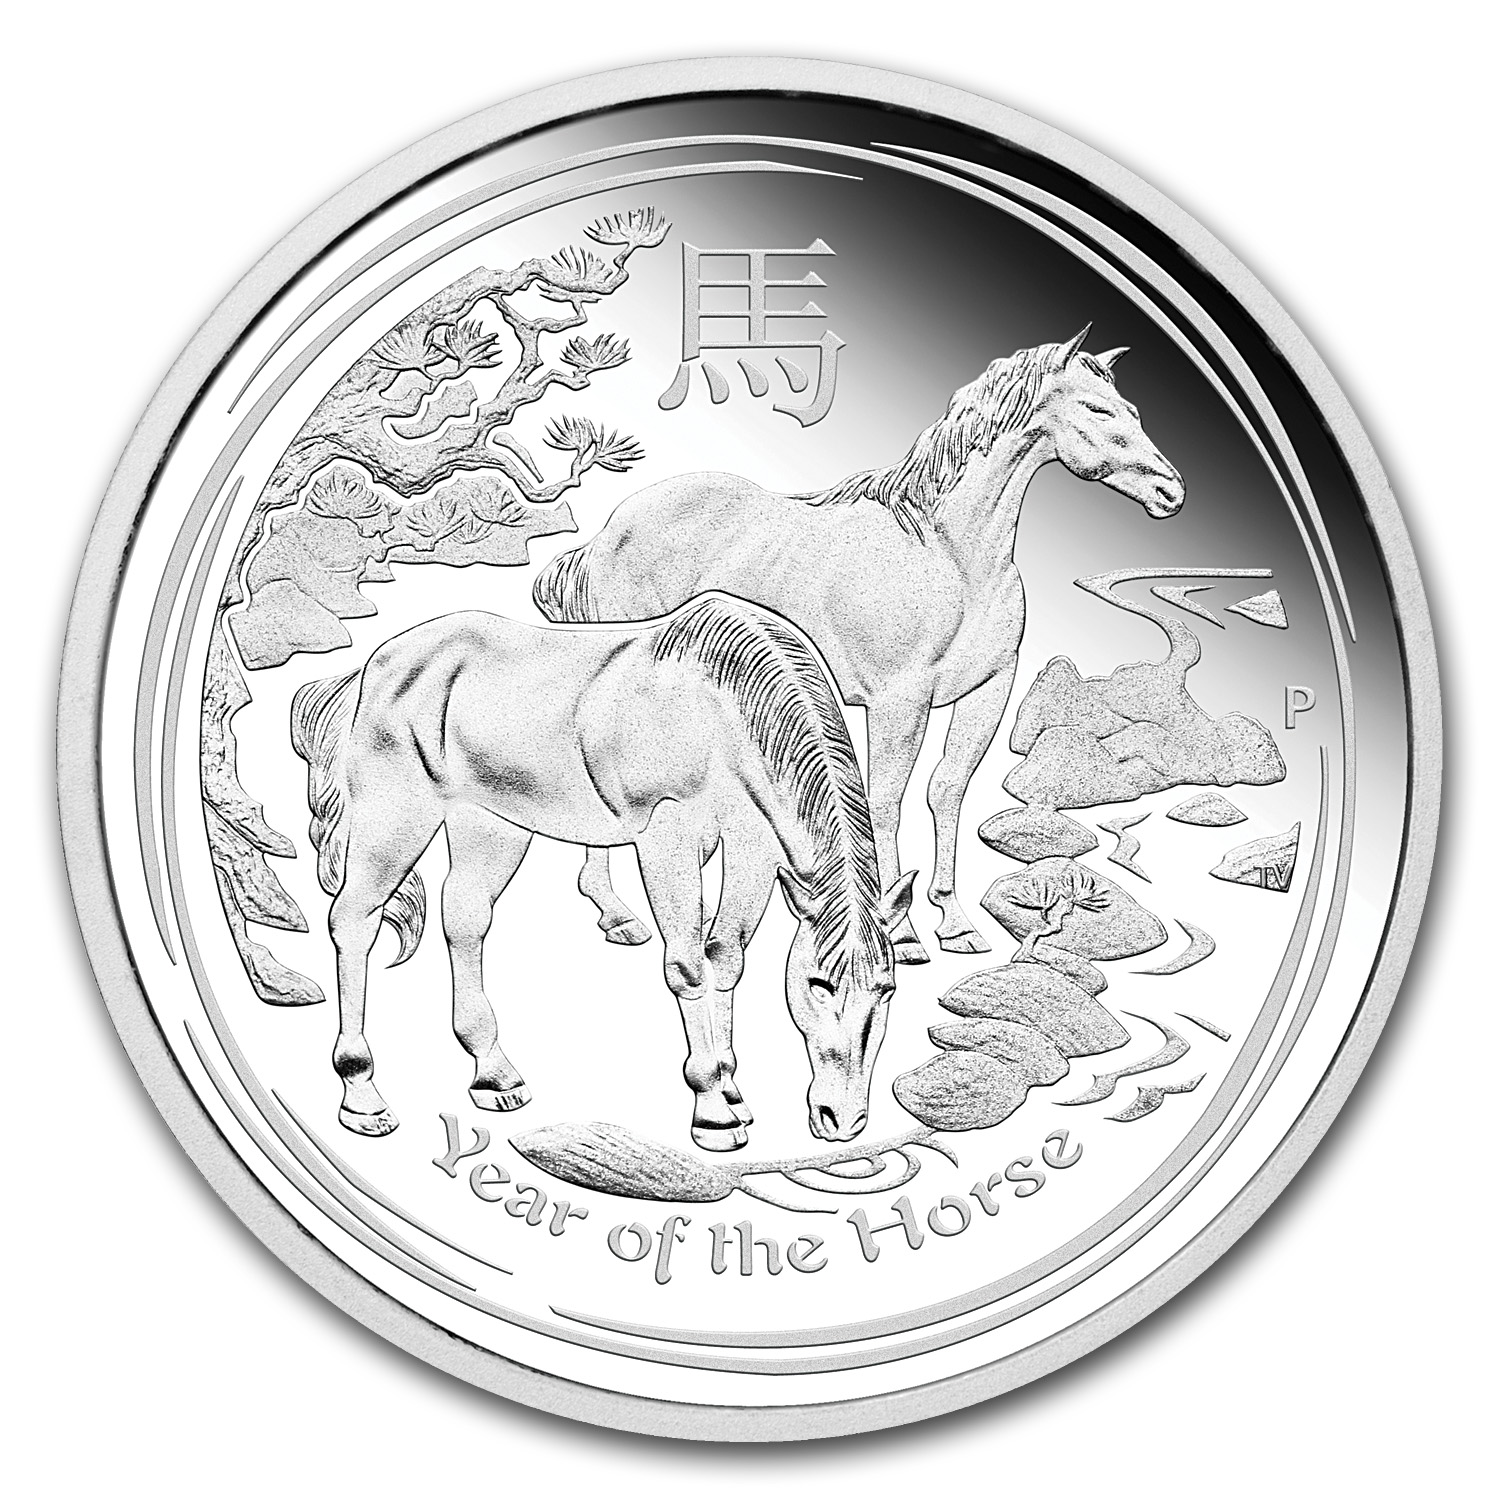 2014 Australia 1/2 oz Silver Year of the Horse Proof